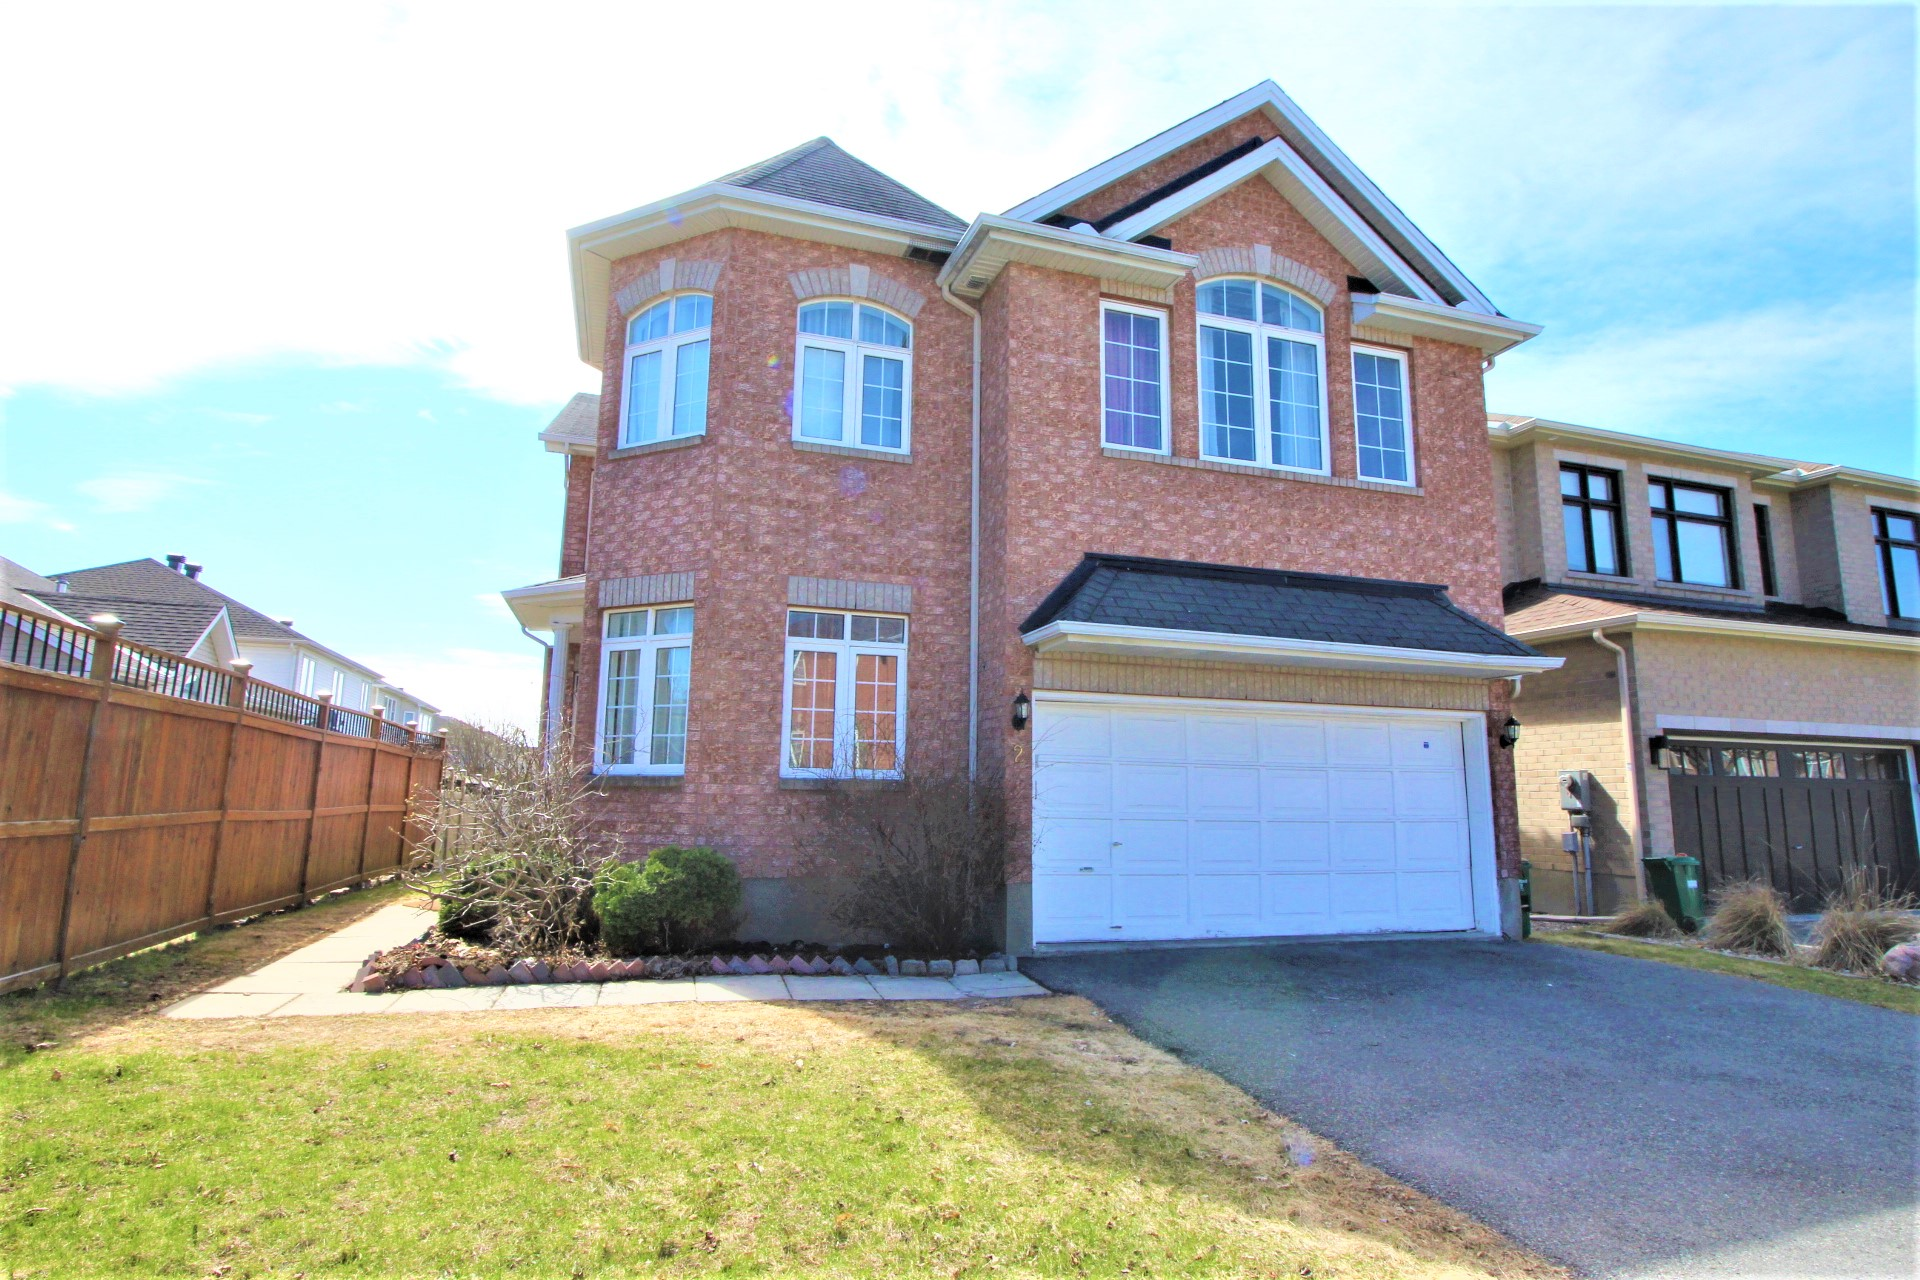 2 Grenwich Circle - Fabulous 5 Bedroom Executive Home for RENT in Central Park area!